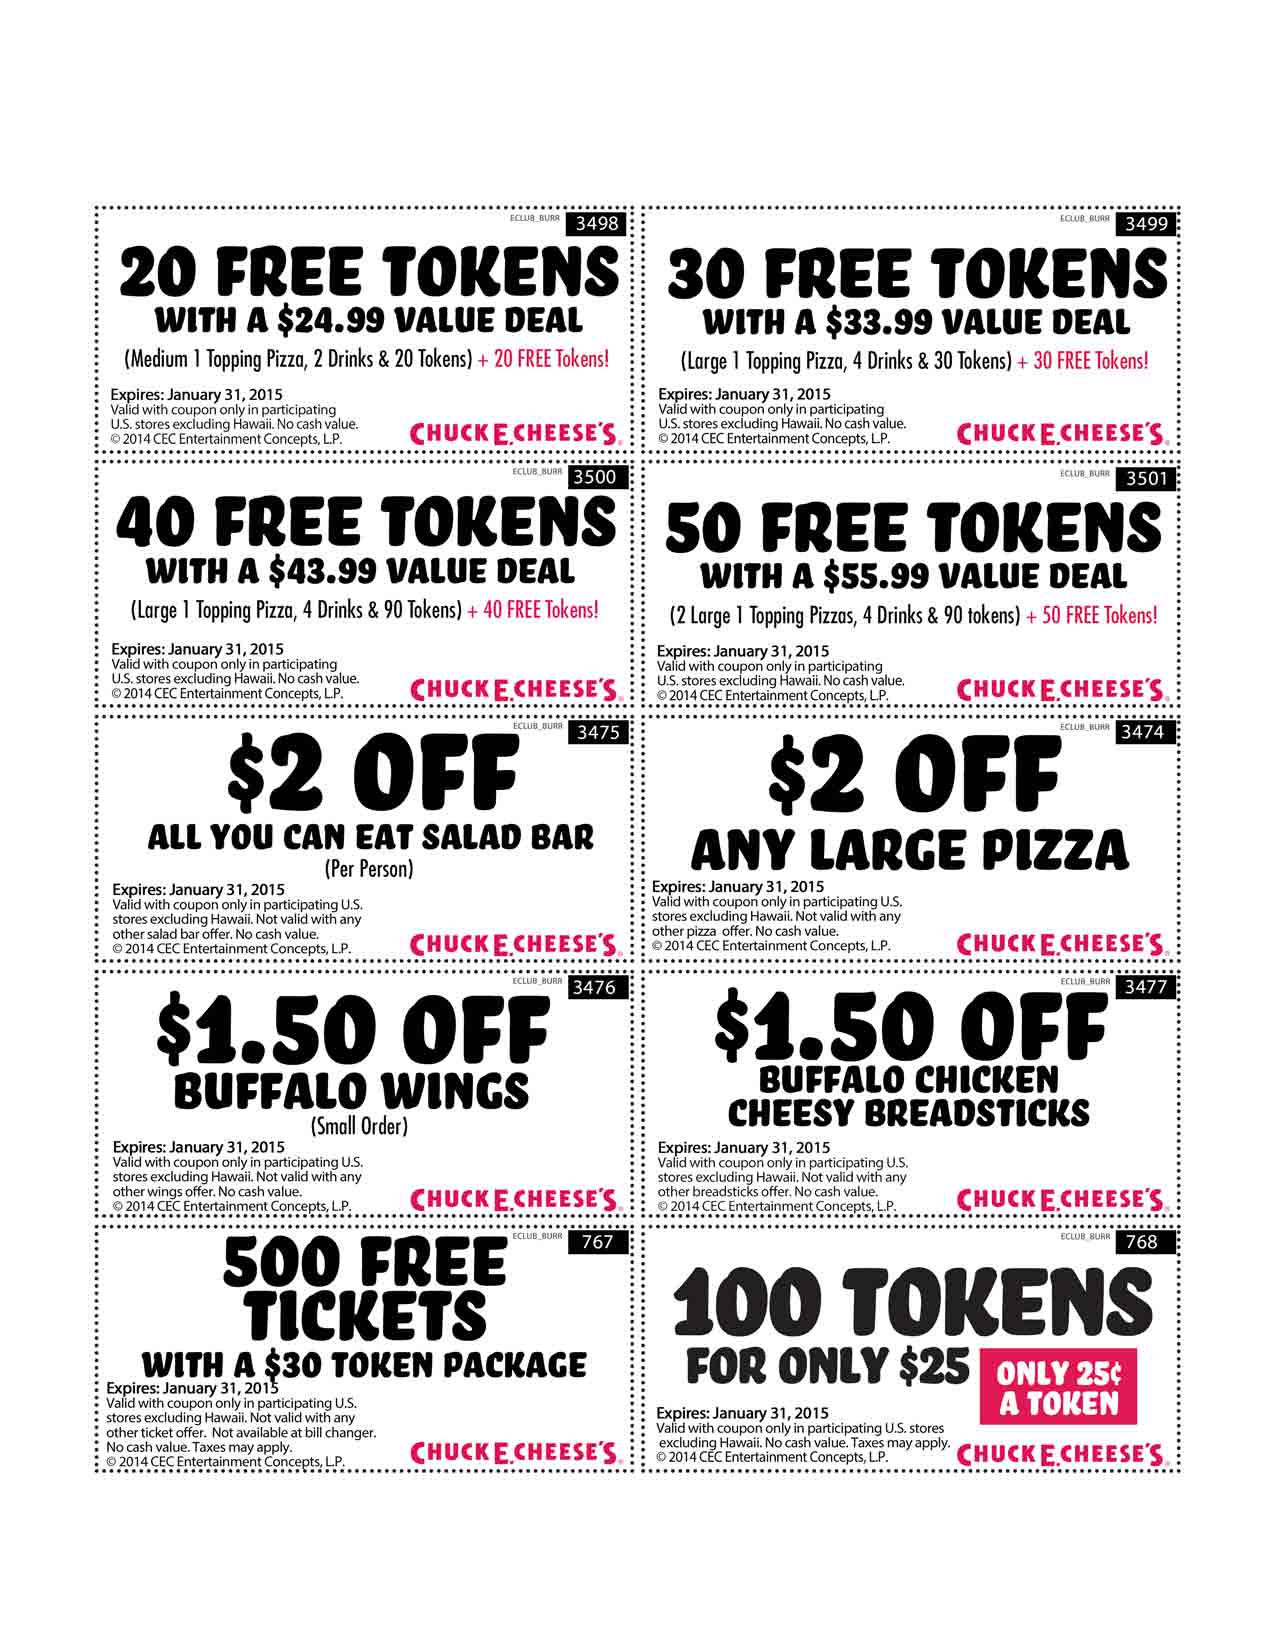 Chuck E Cheese Coupons Printable Coupon Codes December 2020 Takecoupon Com